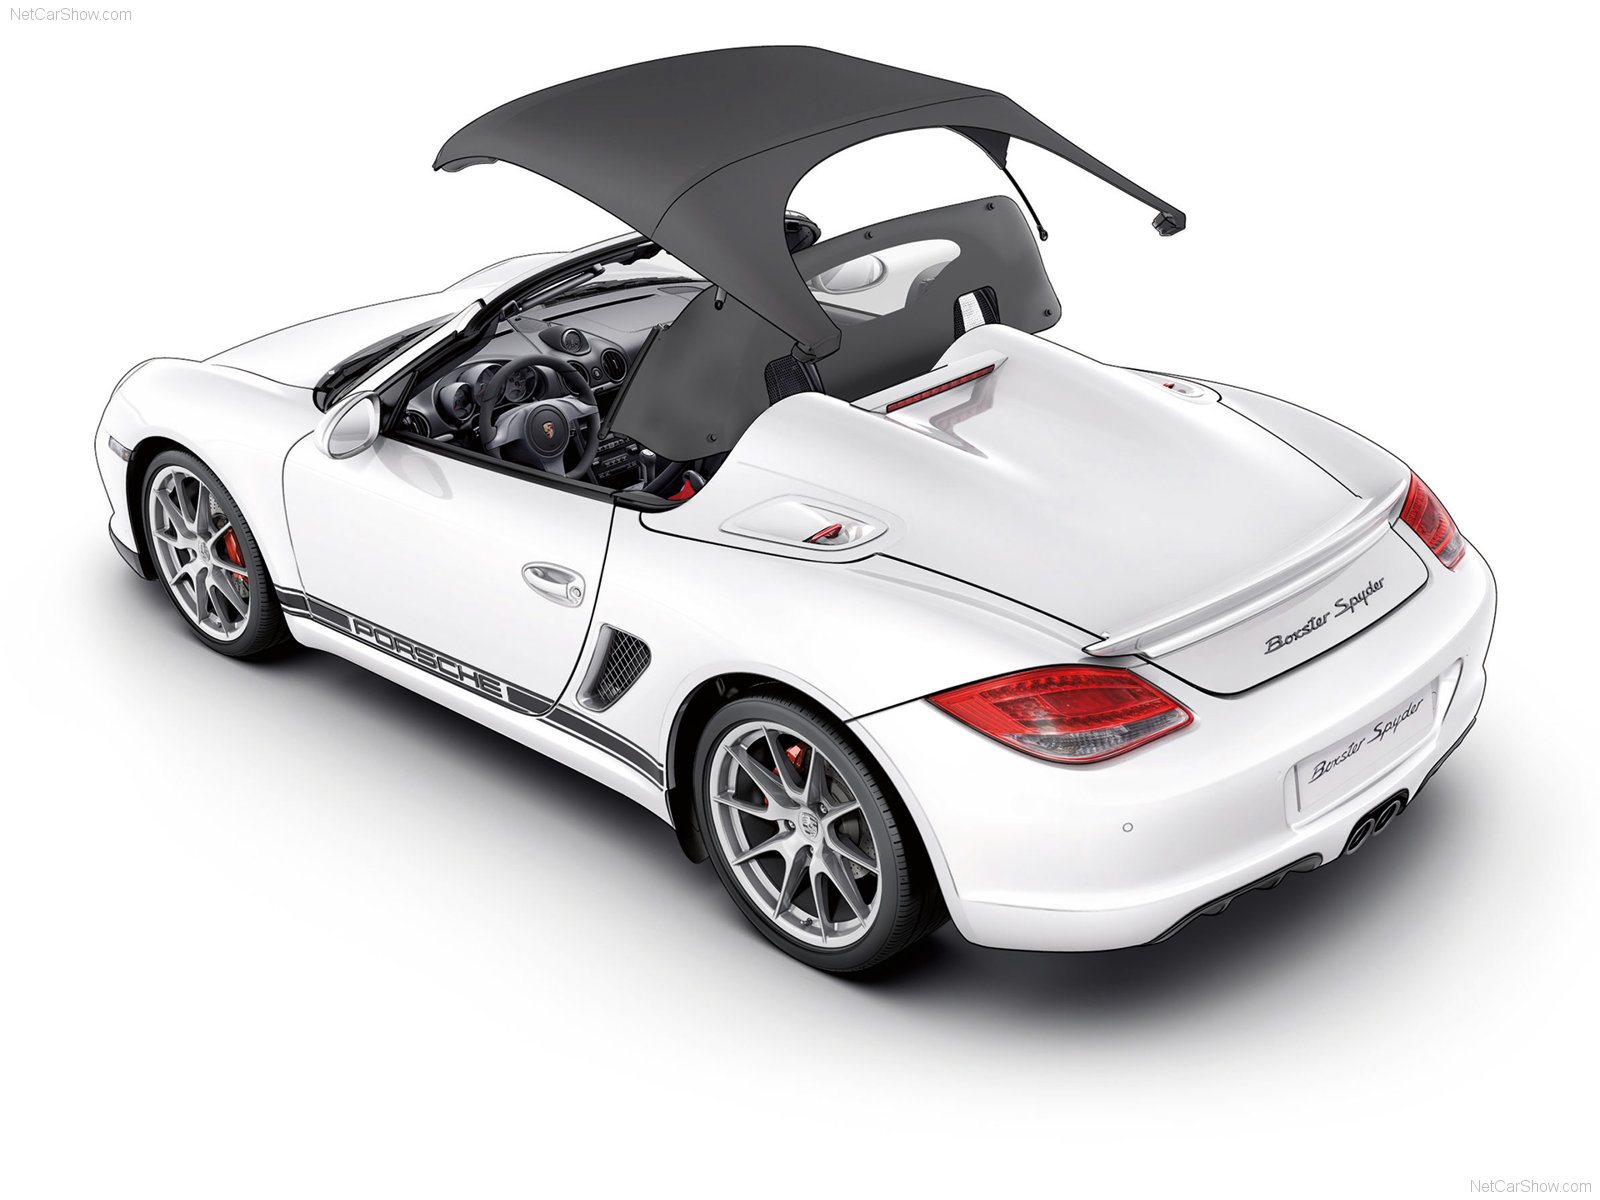 You can vote for this Porsche Boxster Spyder photo